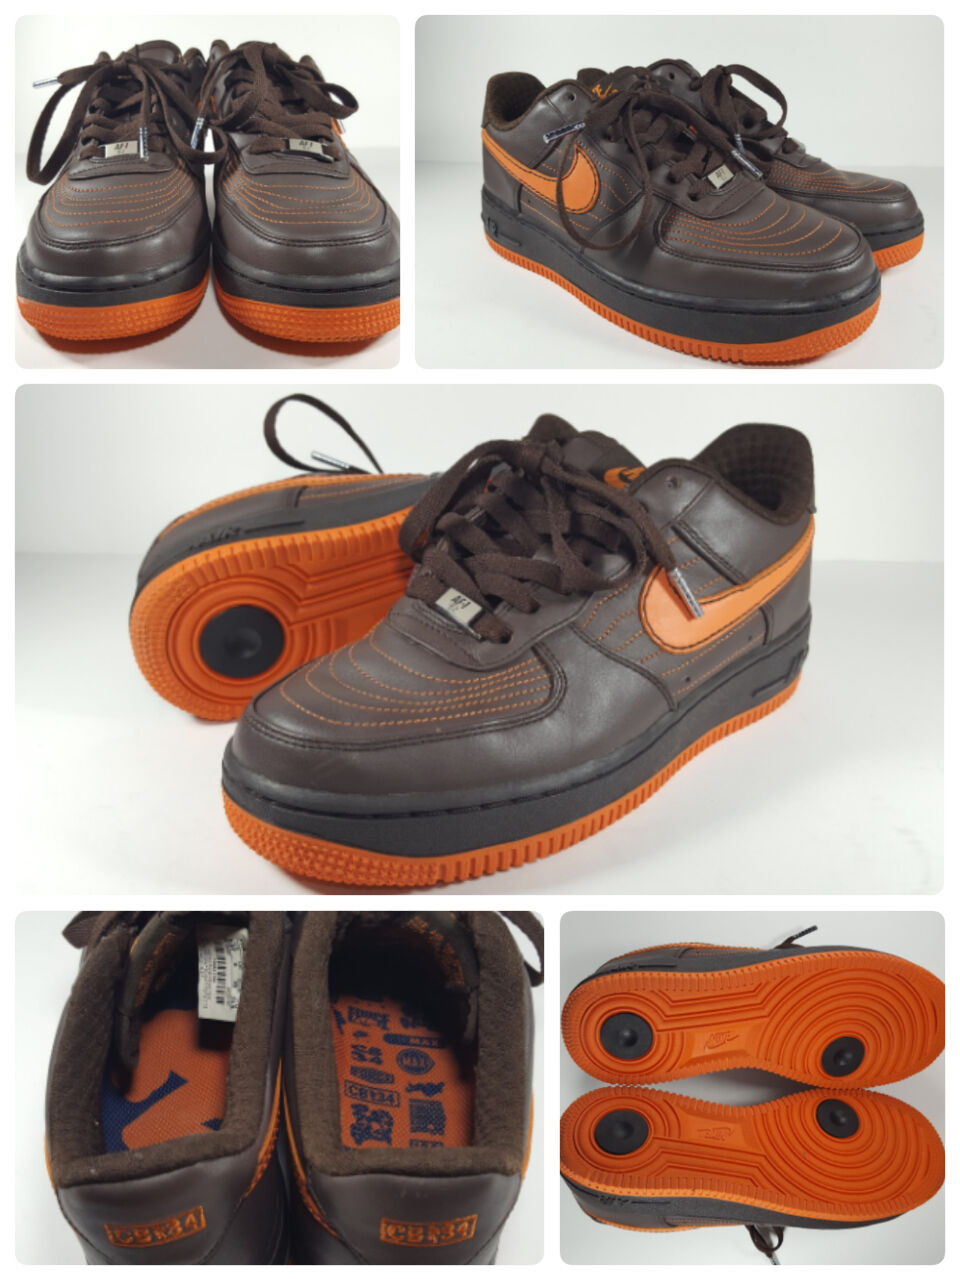 NIKE AIR FORCE | ONE | FORCE Low Premium Charles Barkley CB34 Shoes | Wmn Size 8.5  6.5Y 111368